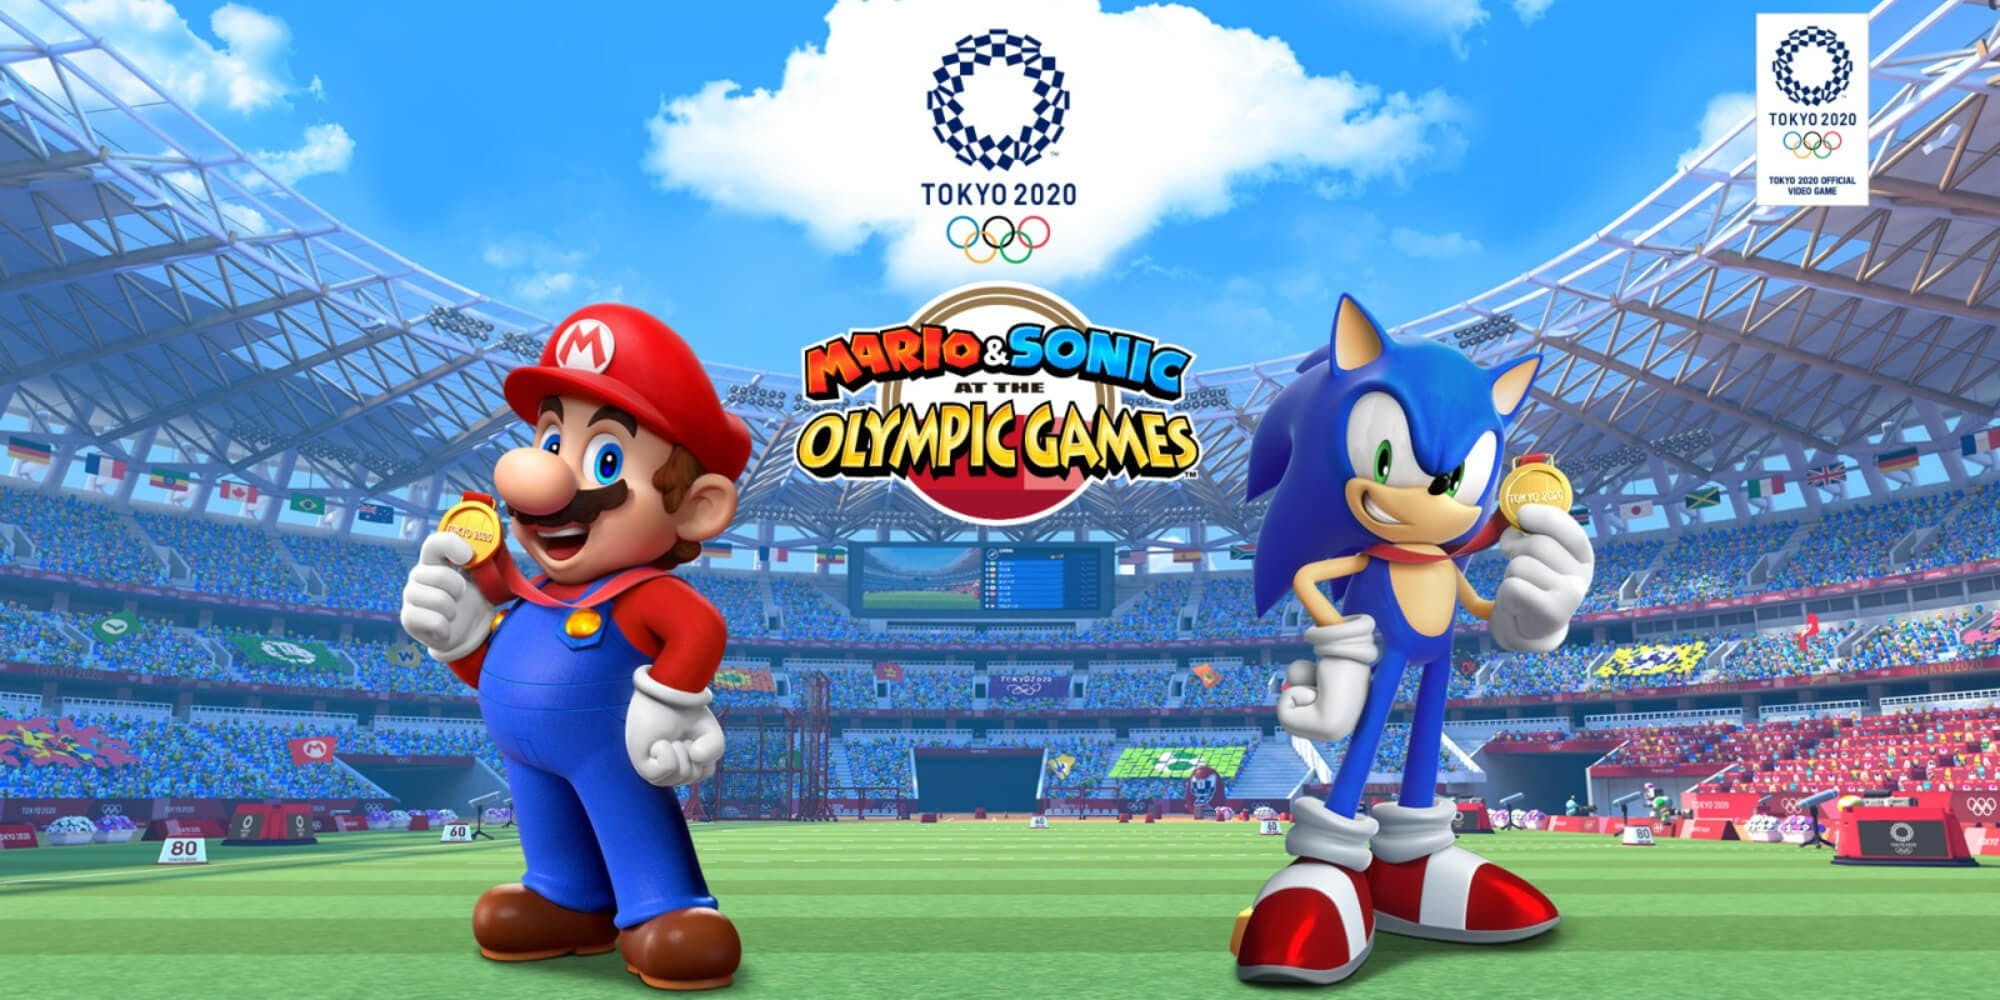 new games 2019 mario and sonic at the olympic games tokyo 2020